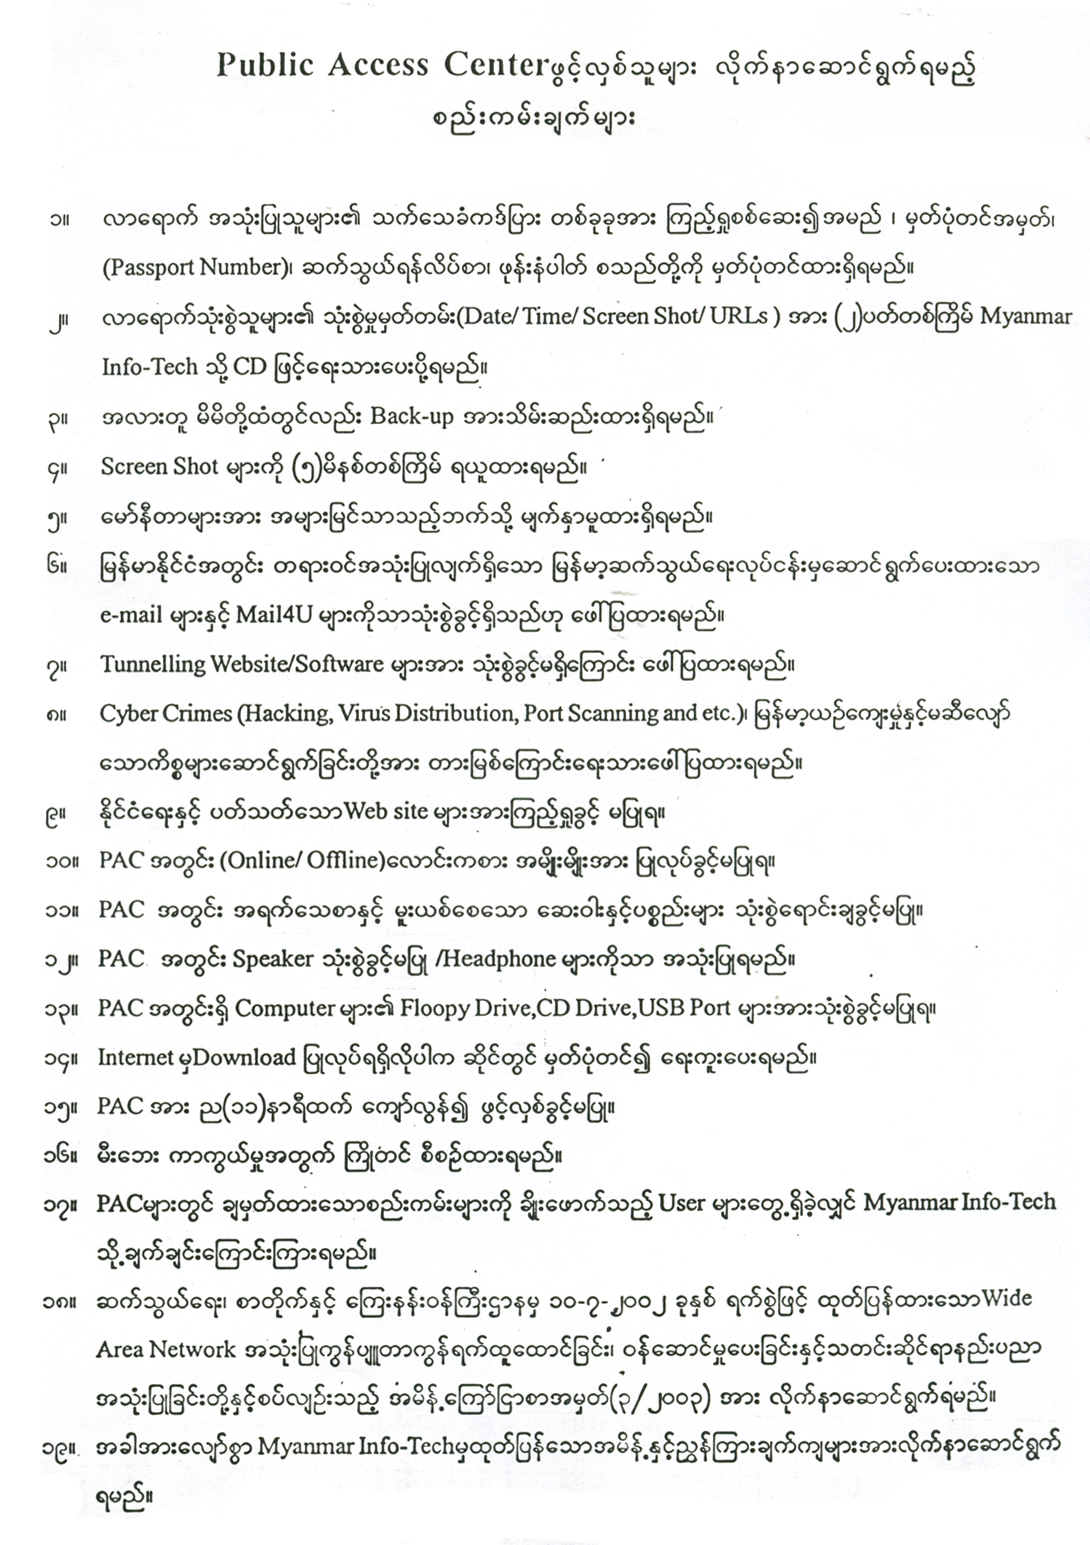 Burmese Regulations For Cybercafes Stringent As Expected